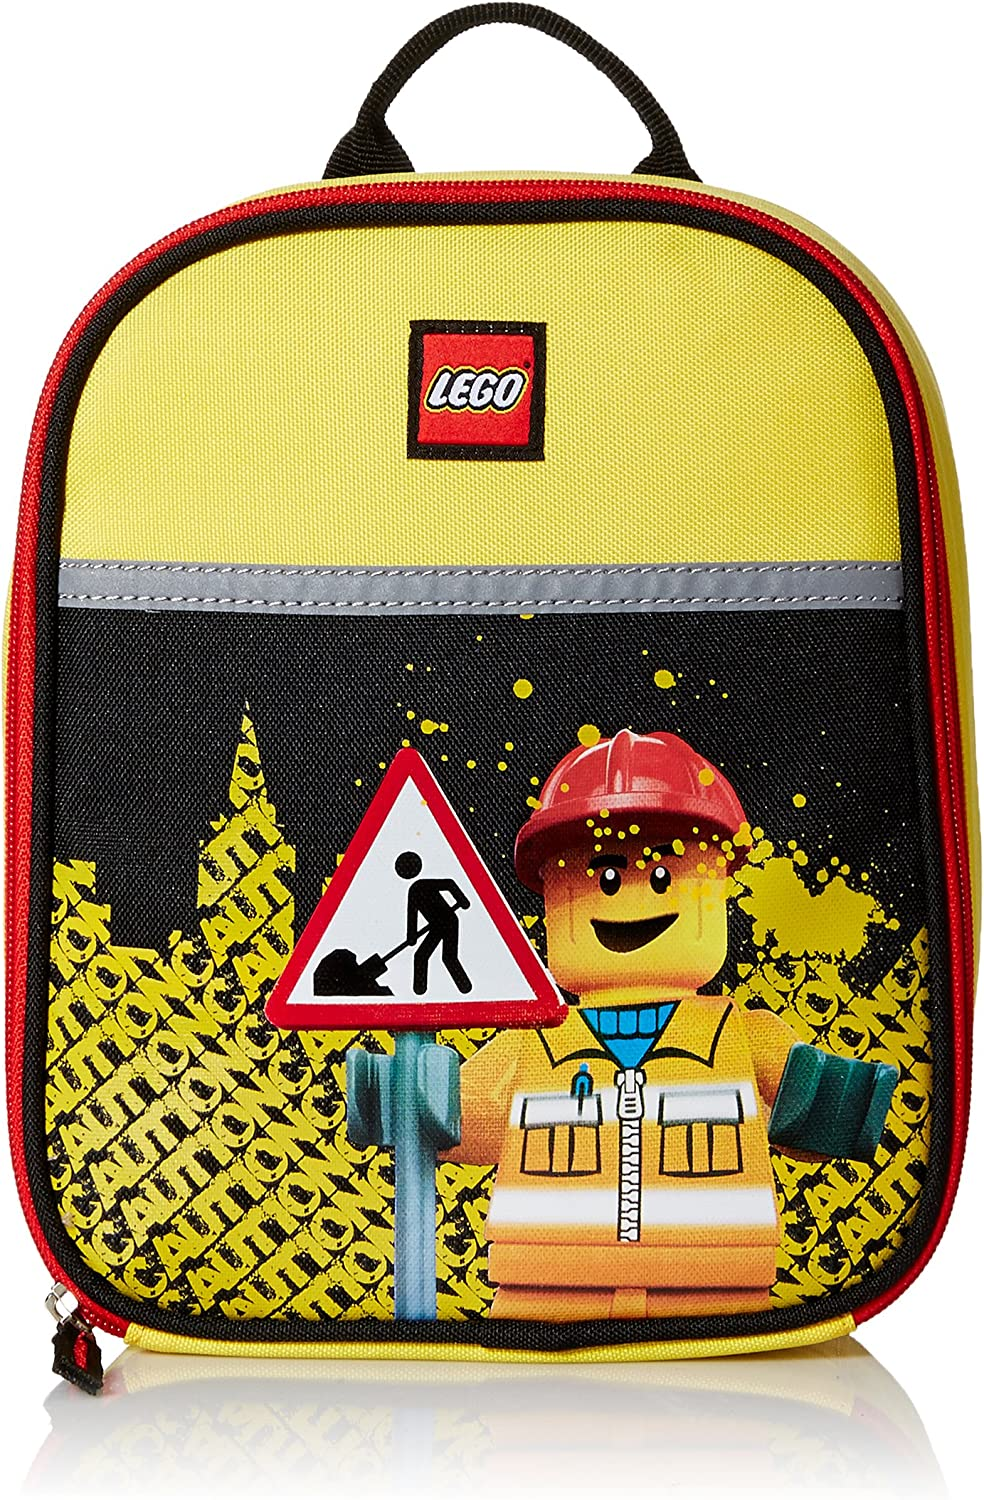 LEGO City Nights Vertical Lunch, Yellow